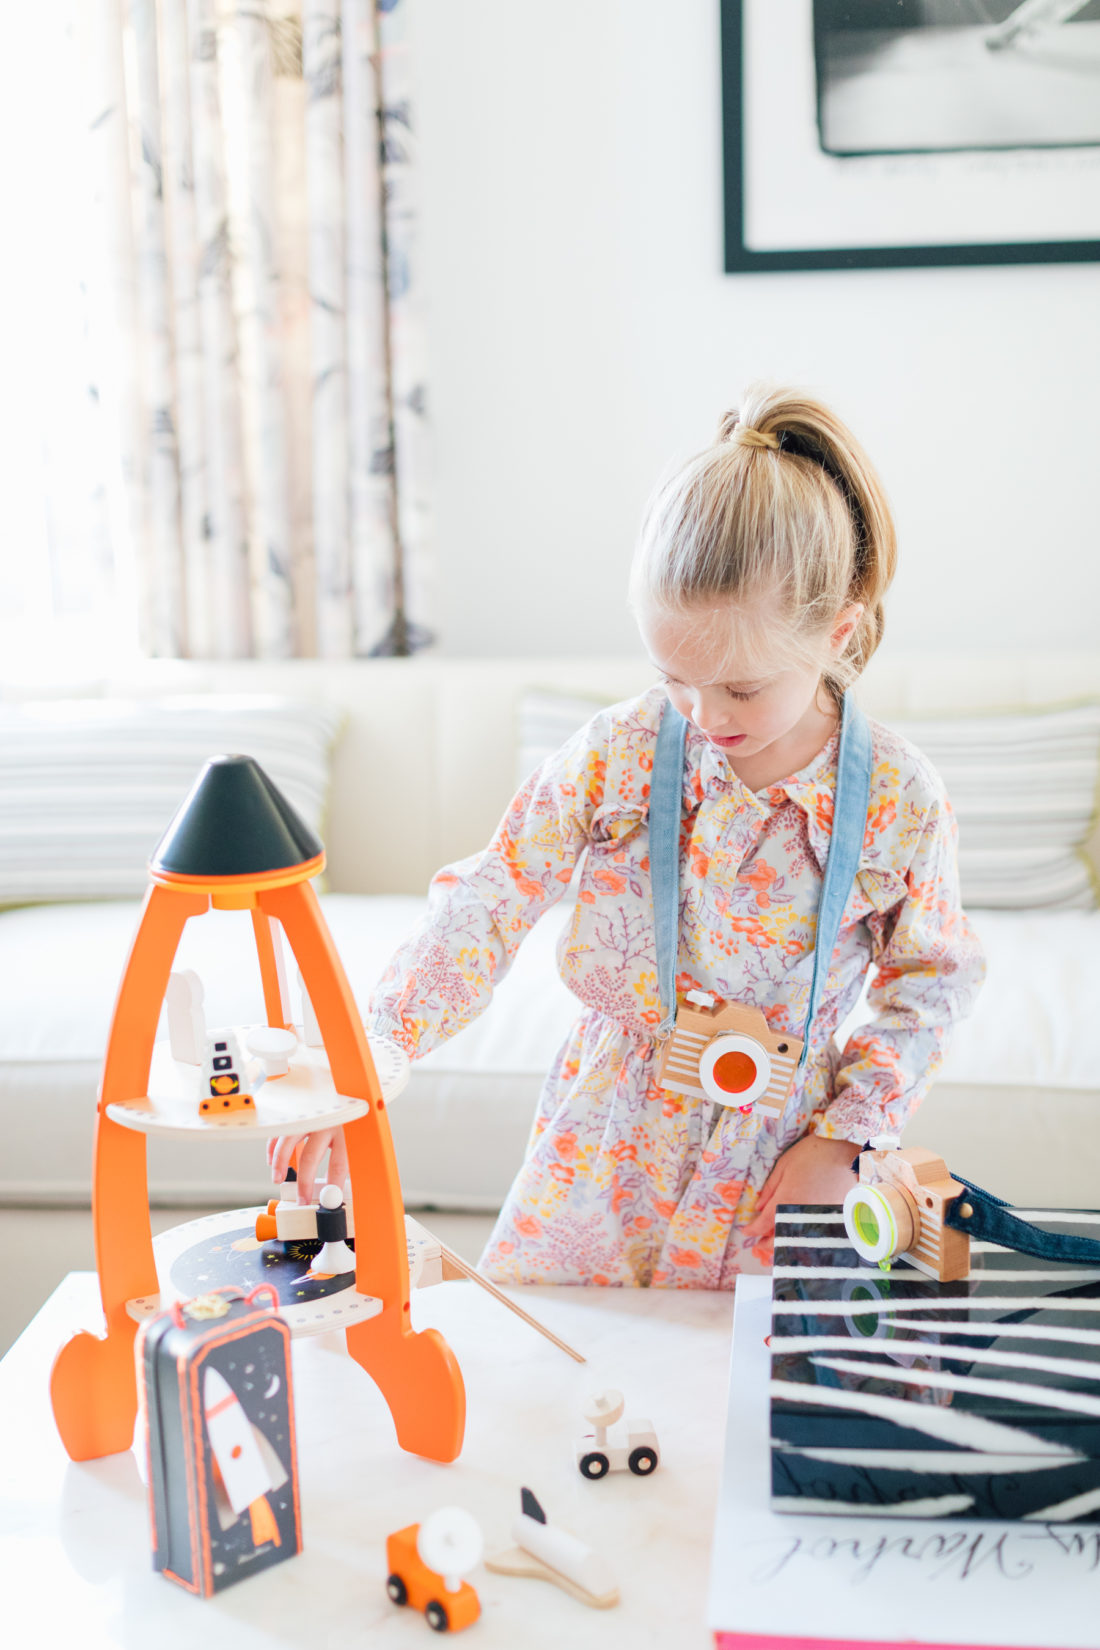 Marlowe Martino plays with a wooden toy from Verishop